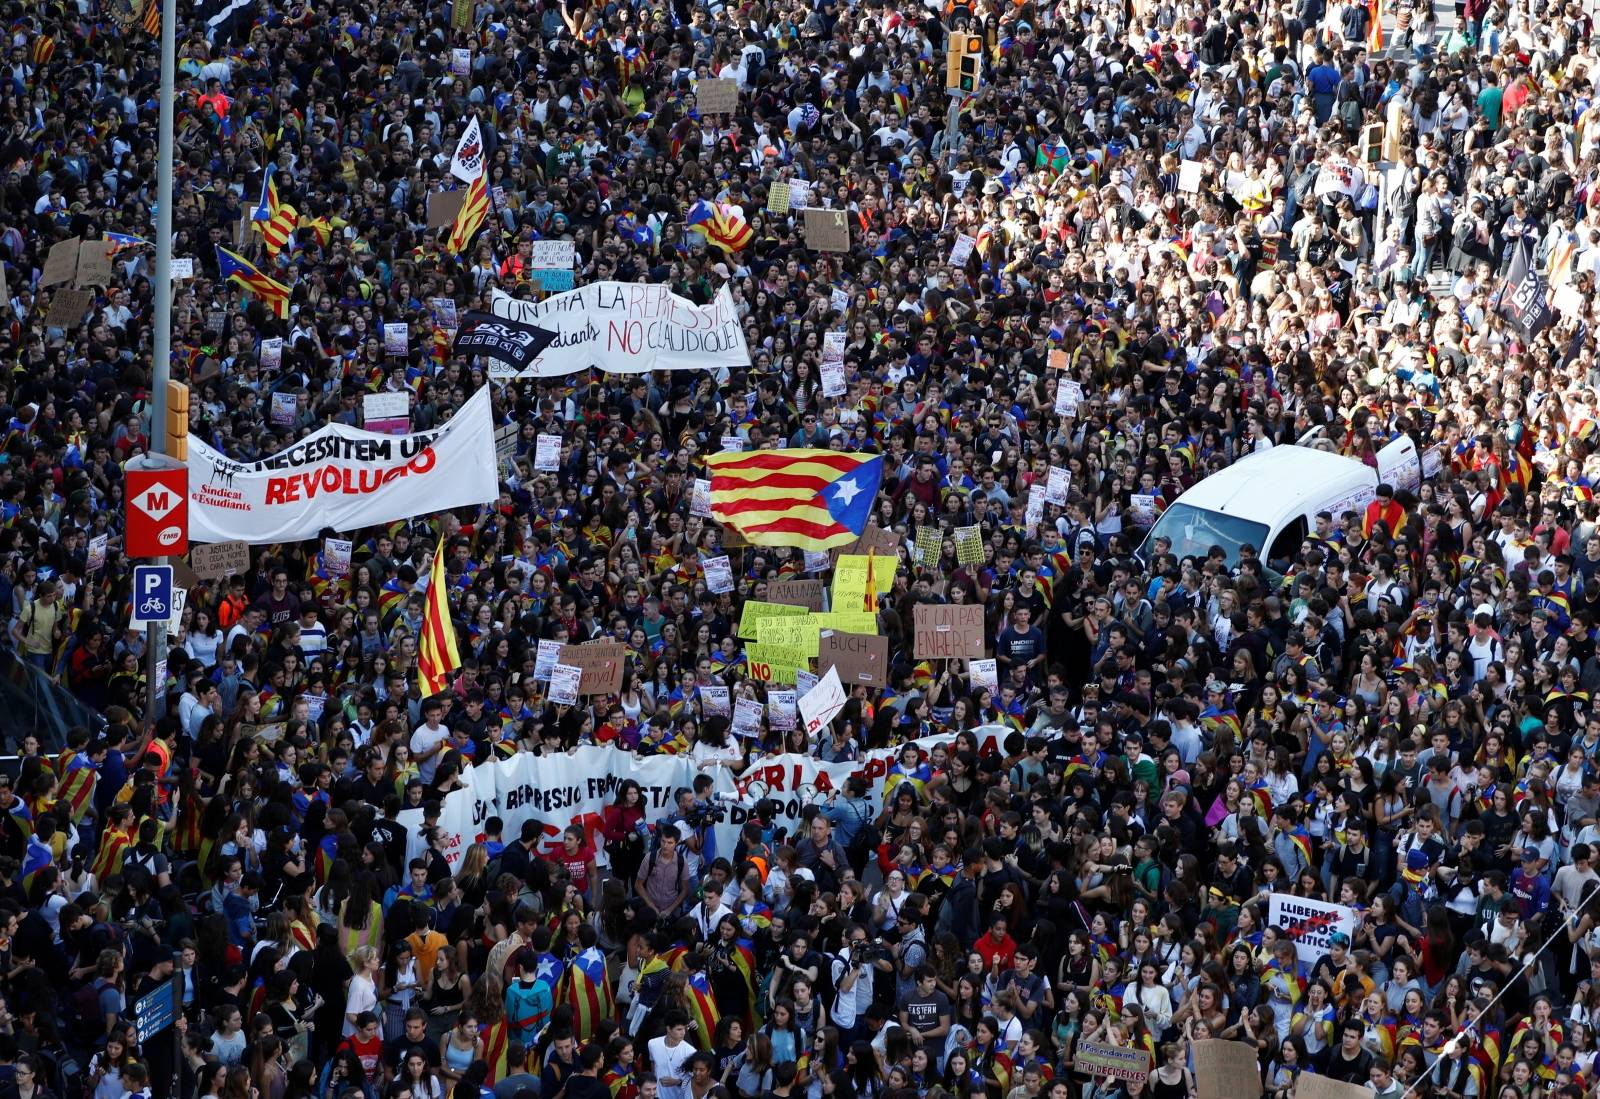 People gather for a protest in Barcelona